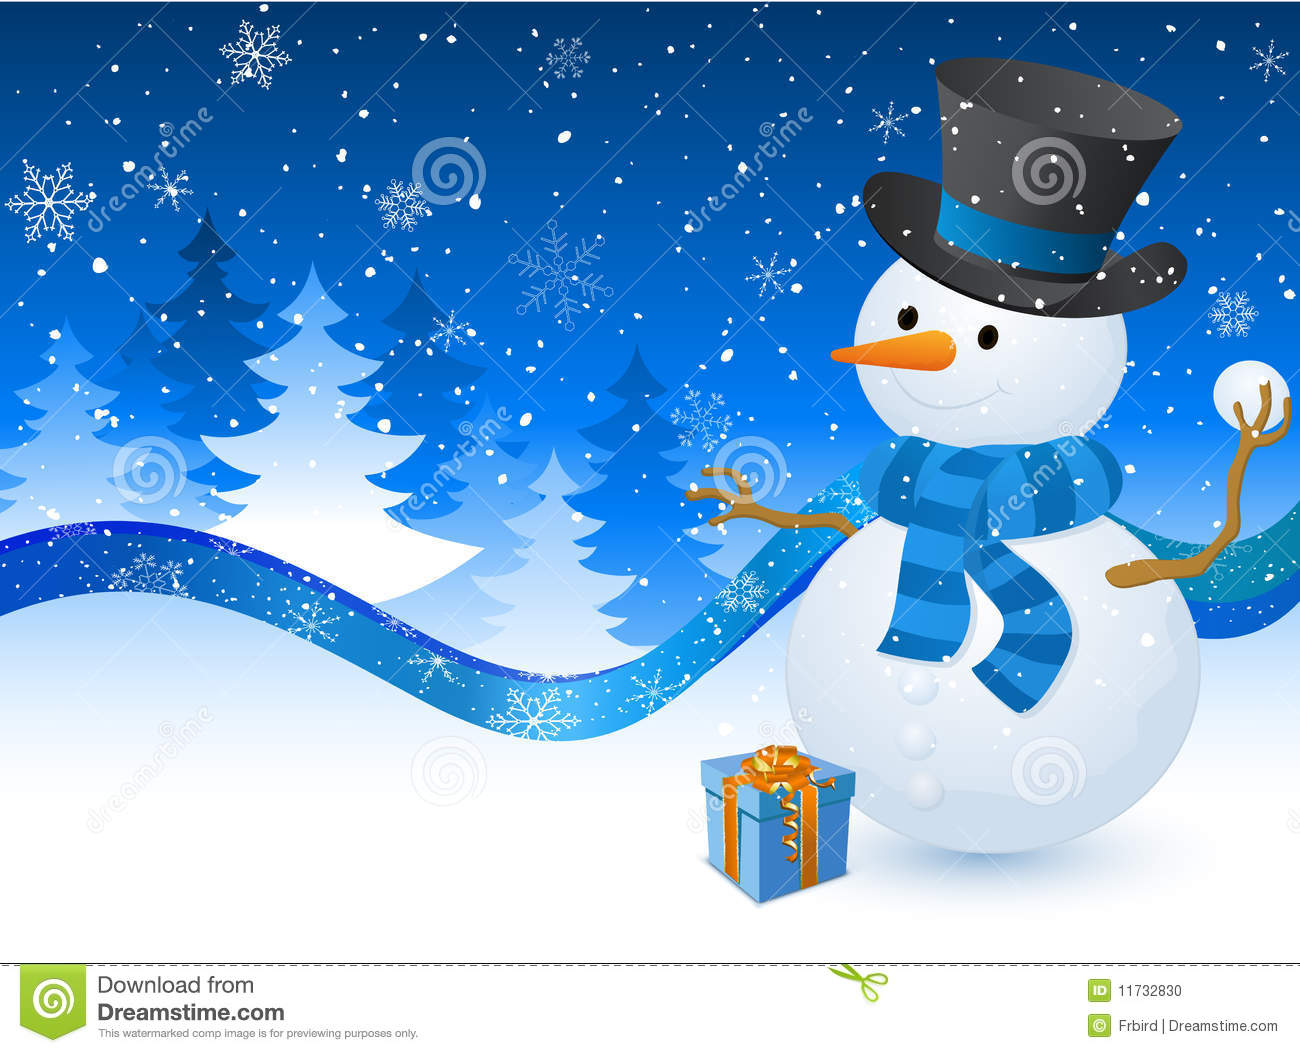 Christmas snowman with a gift box on the blue background